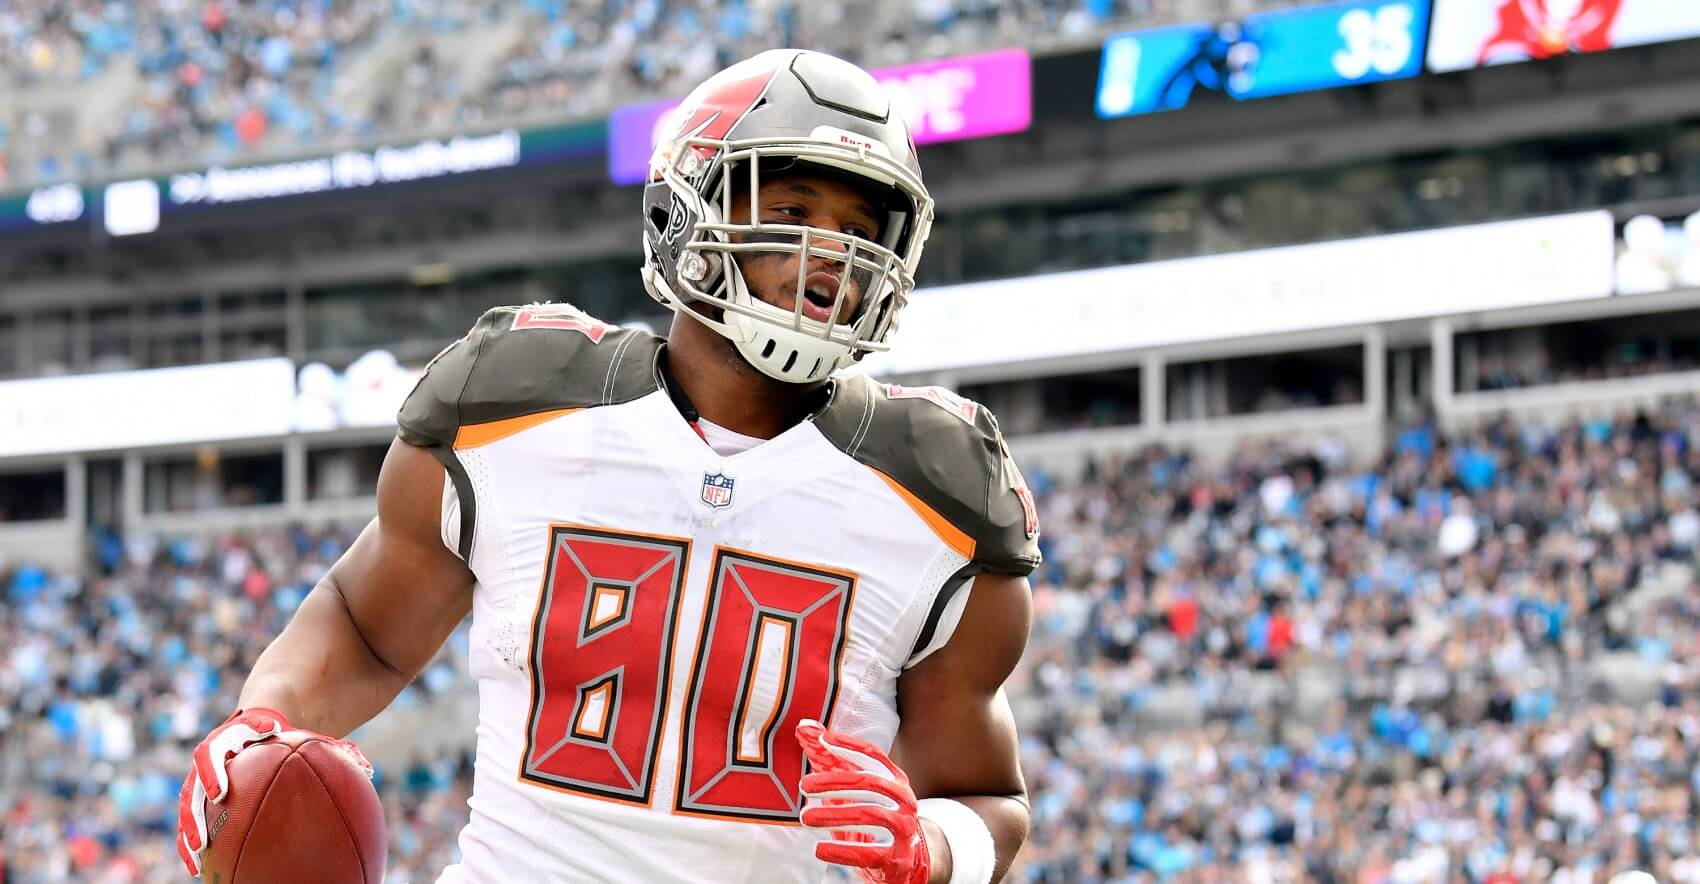 Fantasy Football: Ultimate Draft Tips 2019